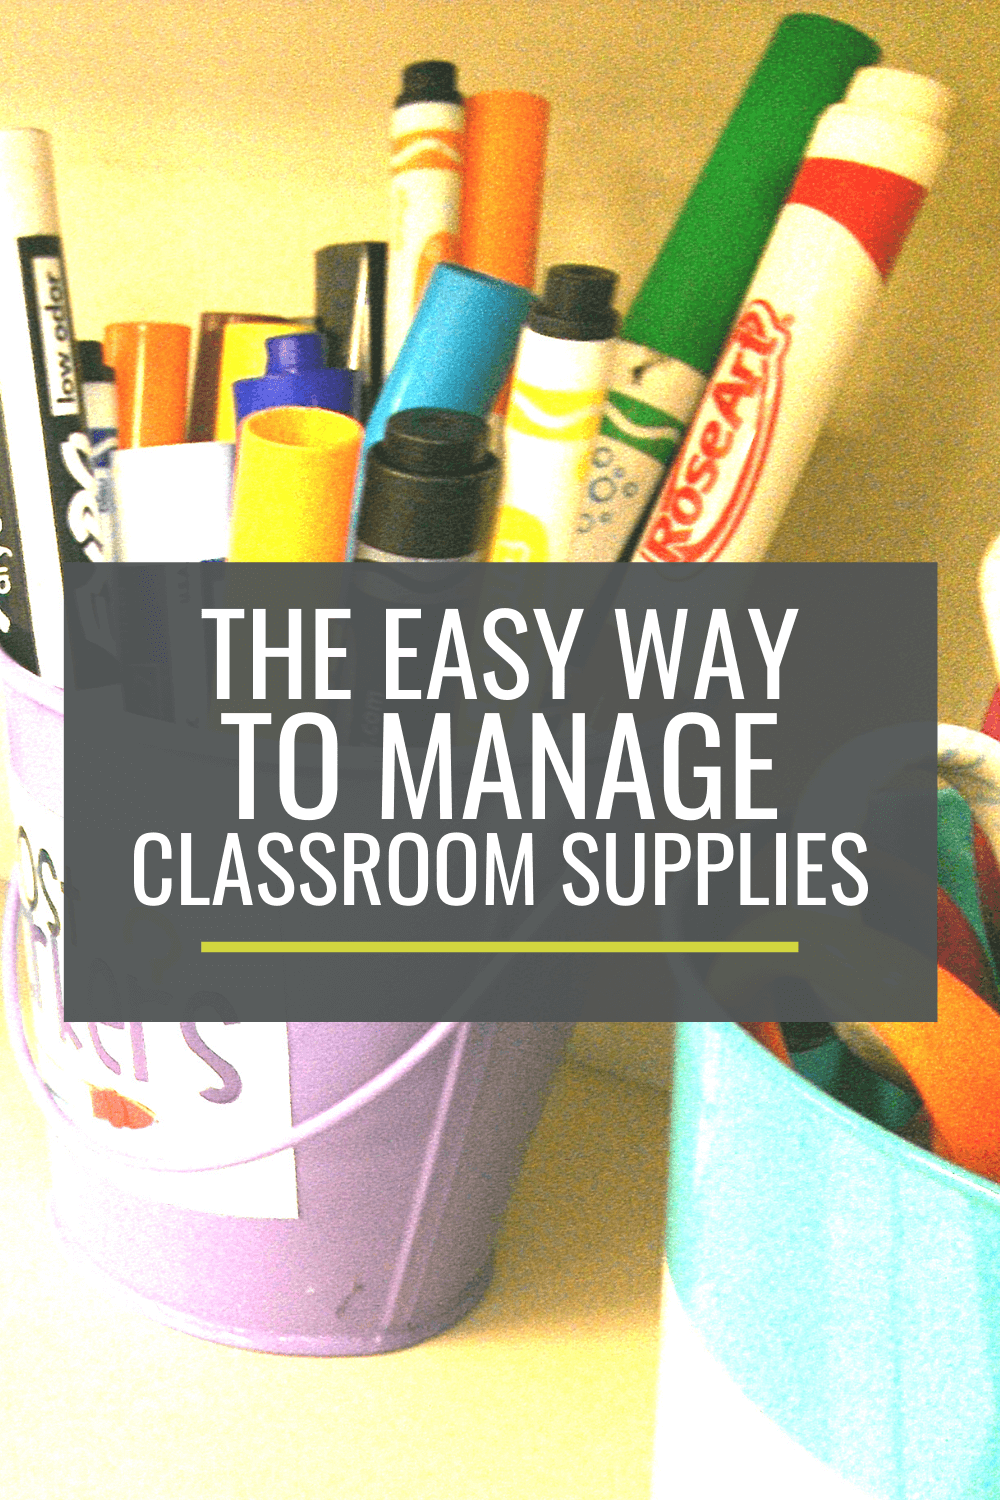 The Easy Way to Manage Classroom Supplies